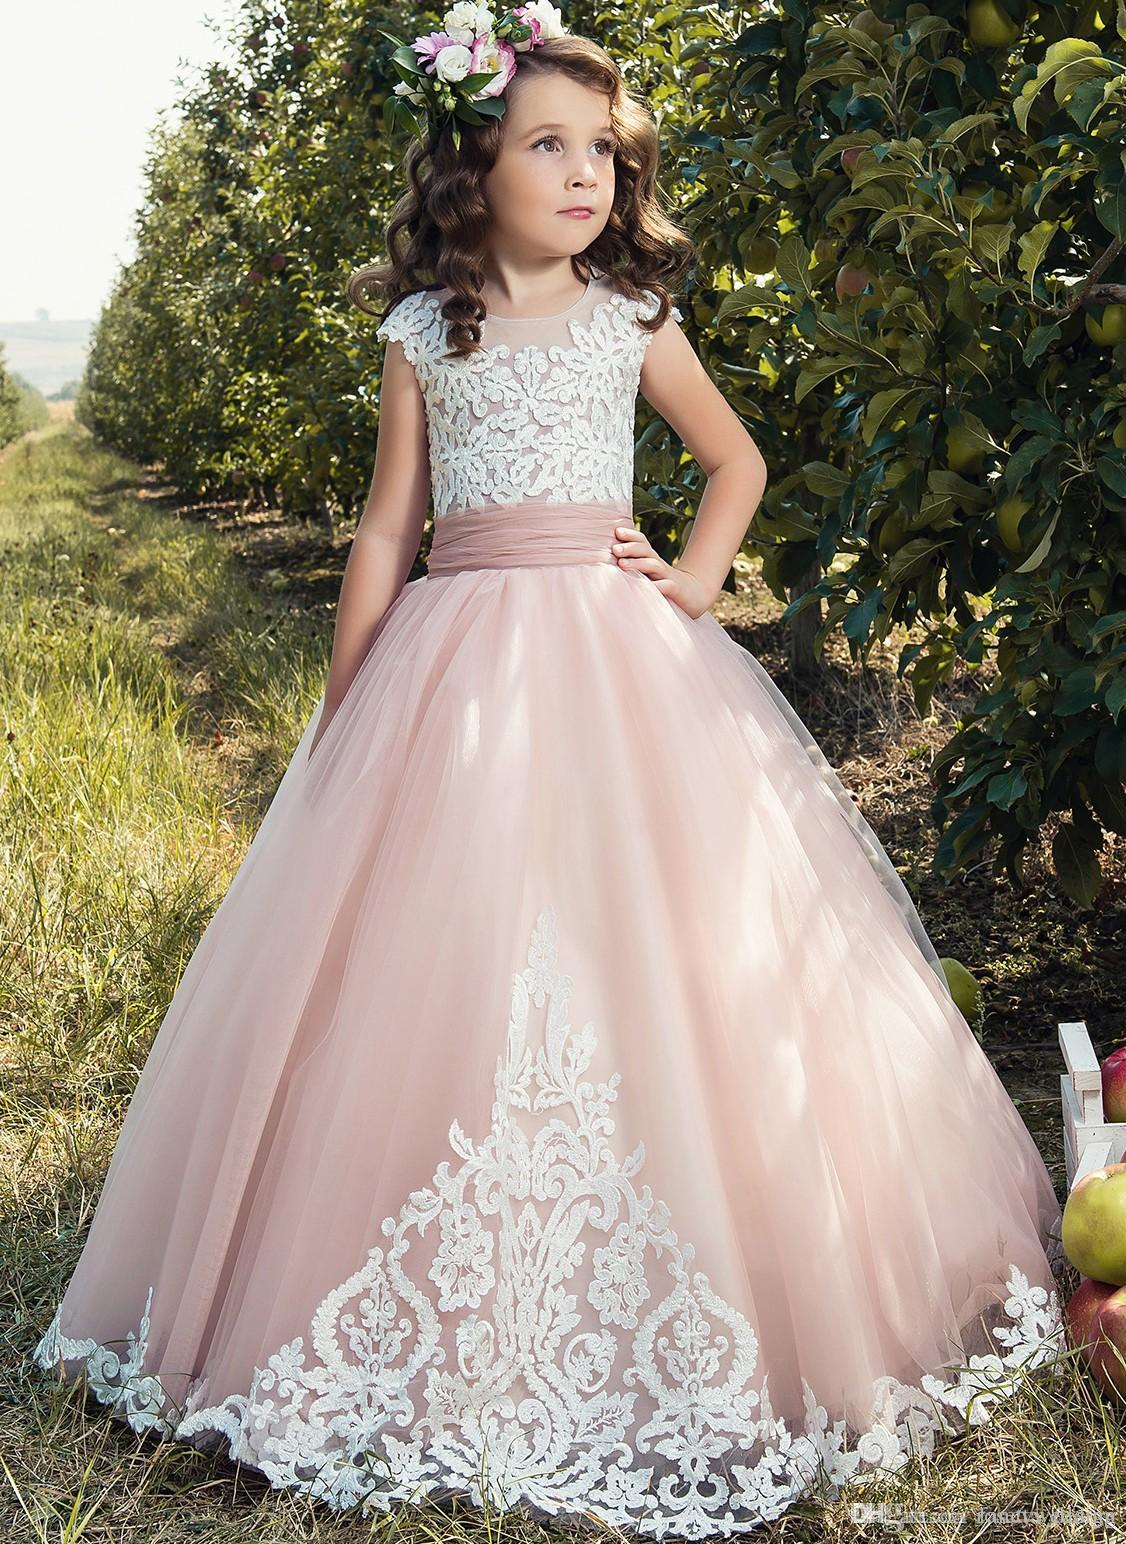 Elegant Applique Lace Flower Girl Dresses Tulle Girls Pageant ...